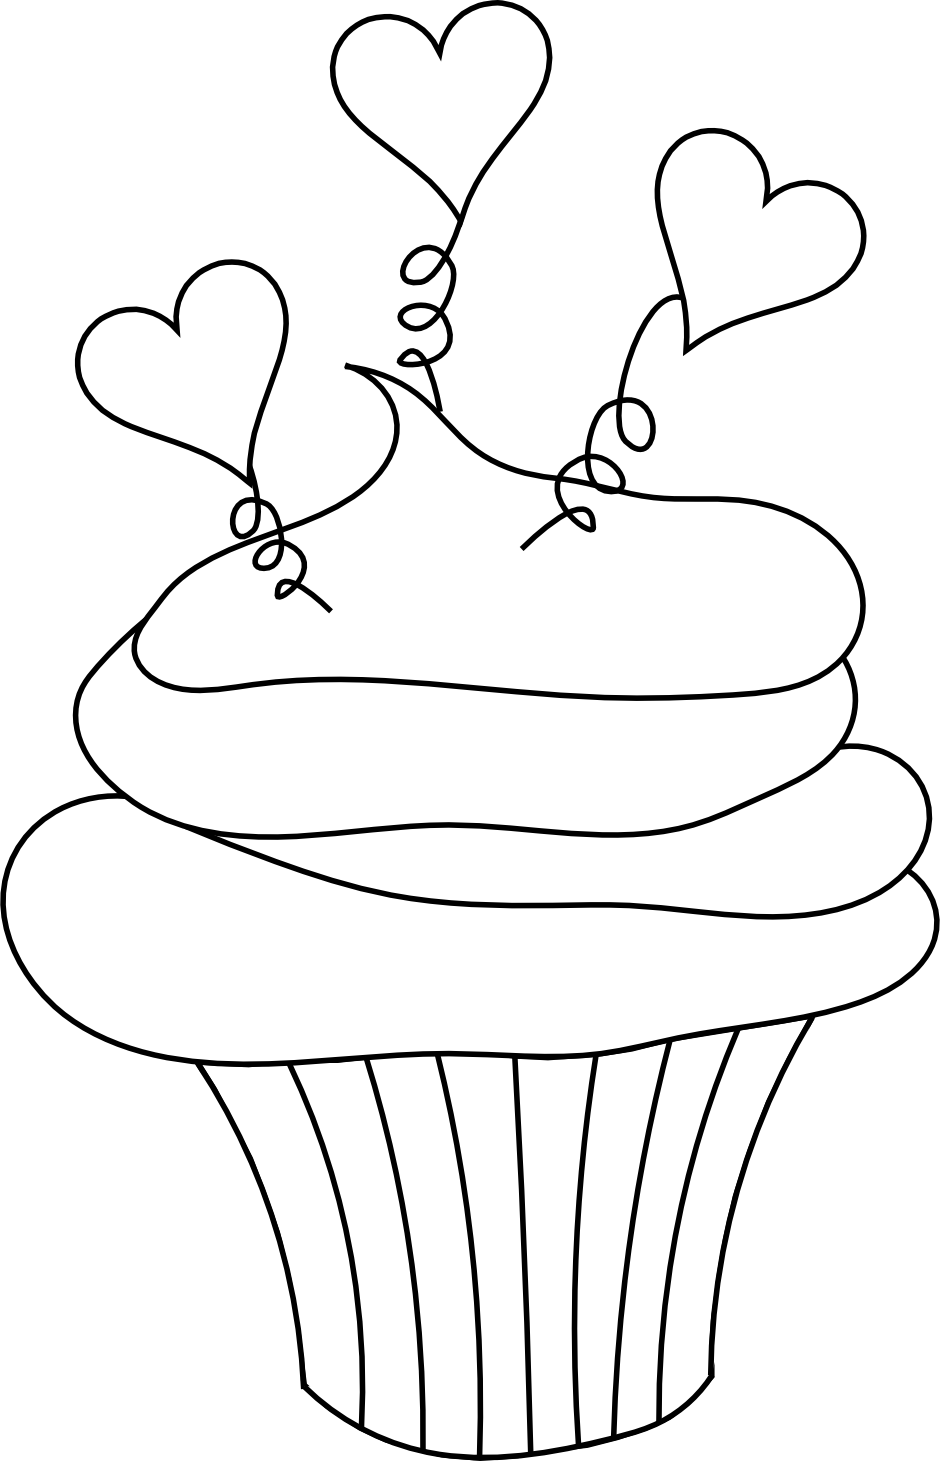 Clipart cupcake outline. Black and white panda